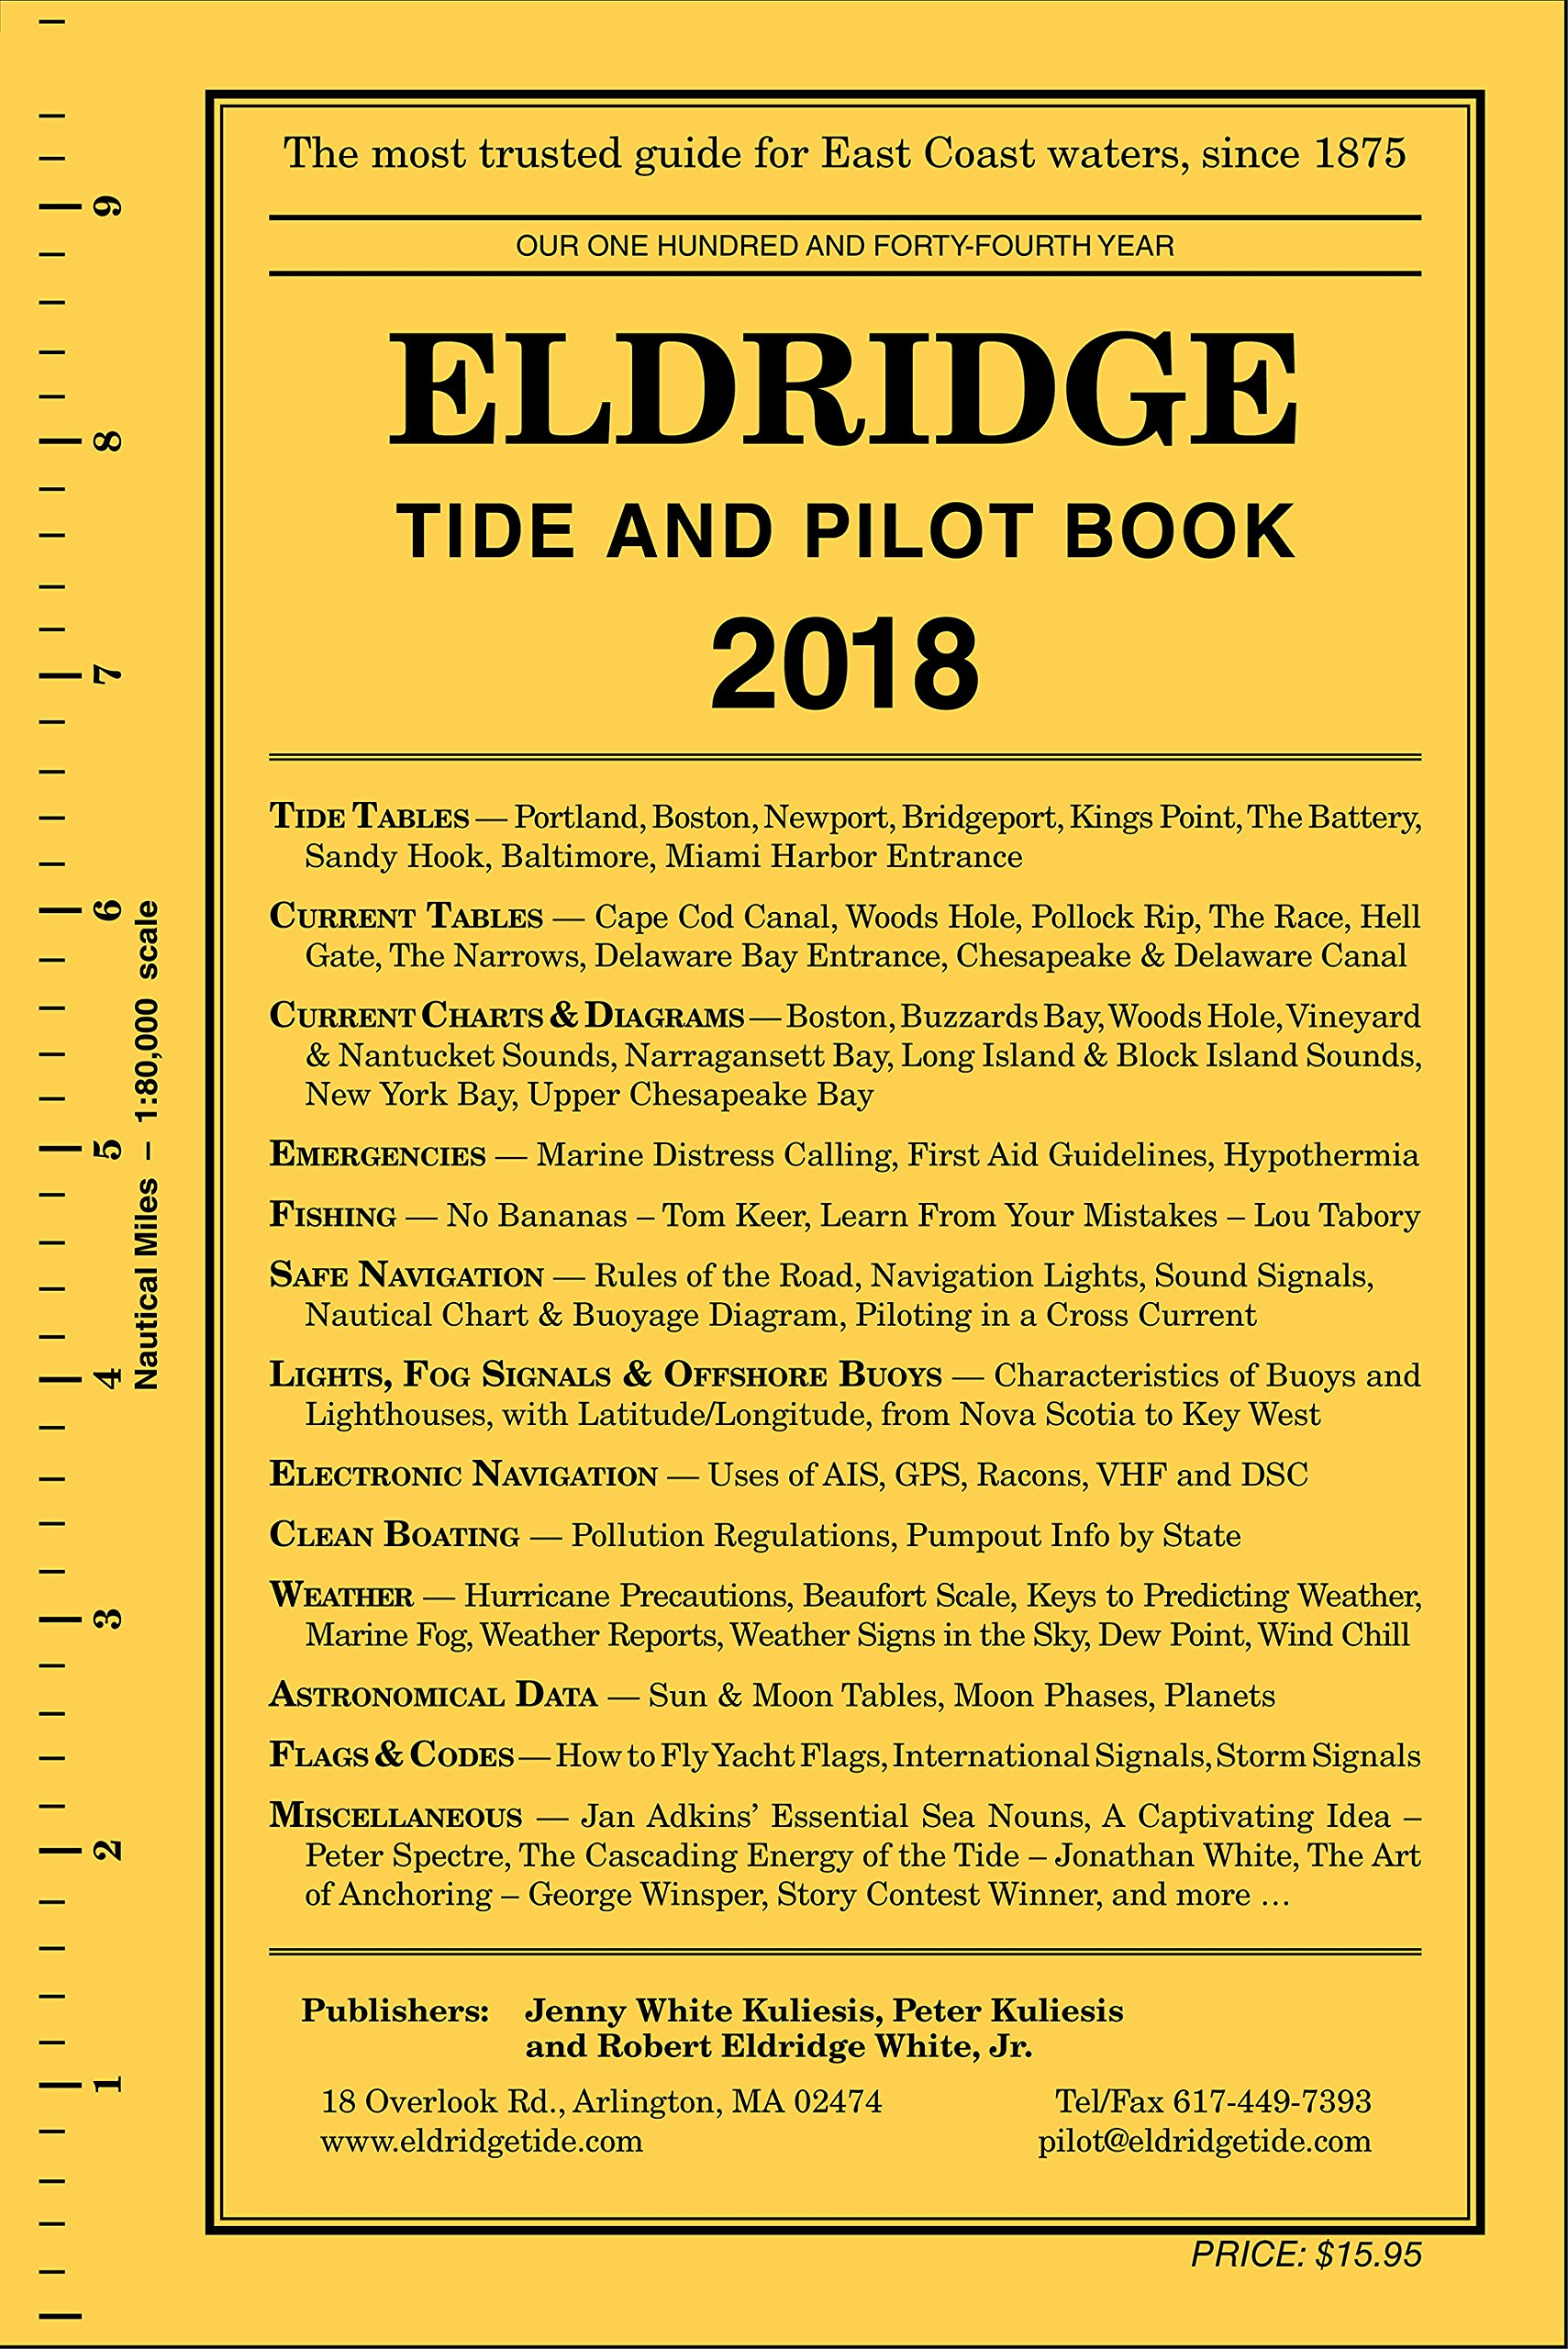 Eldridge Tide And Pilot Book 2018 Jenny White Kuliesis Peter